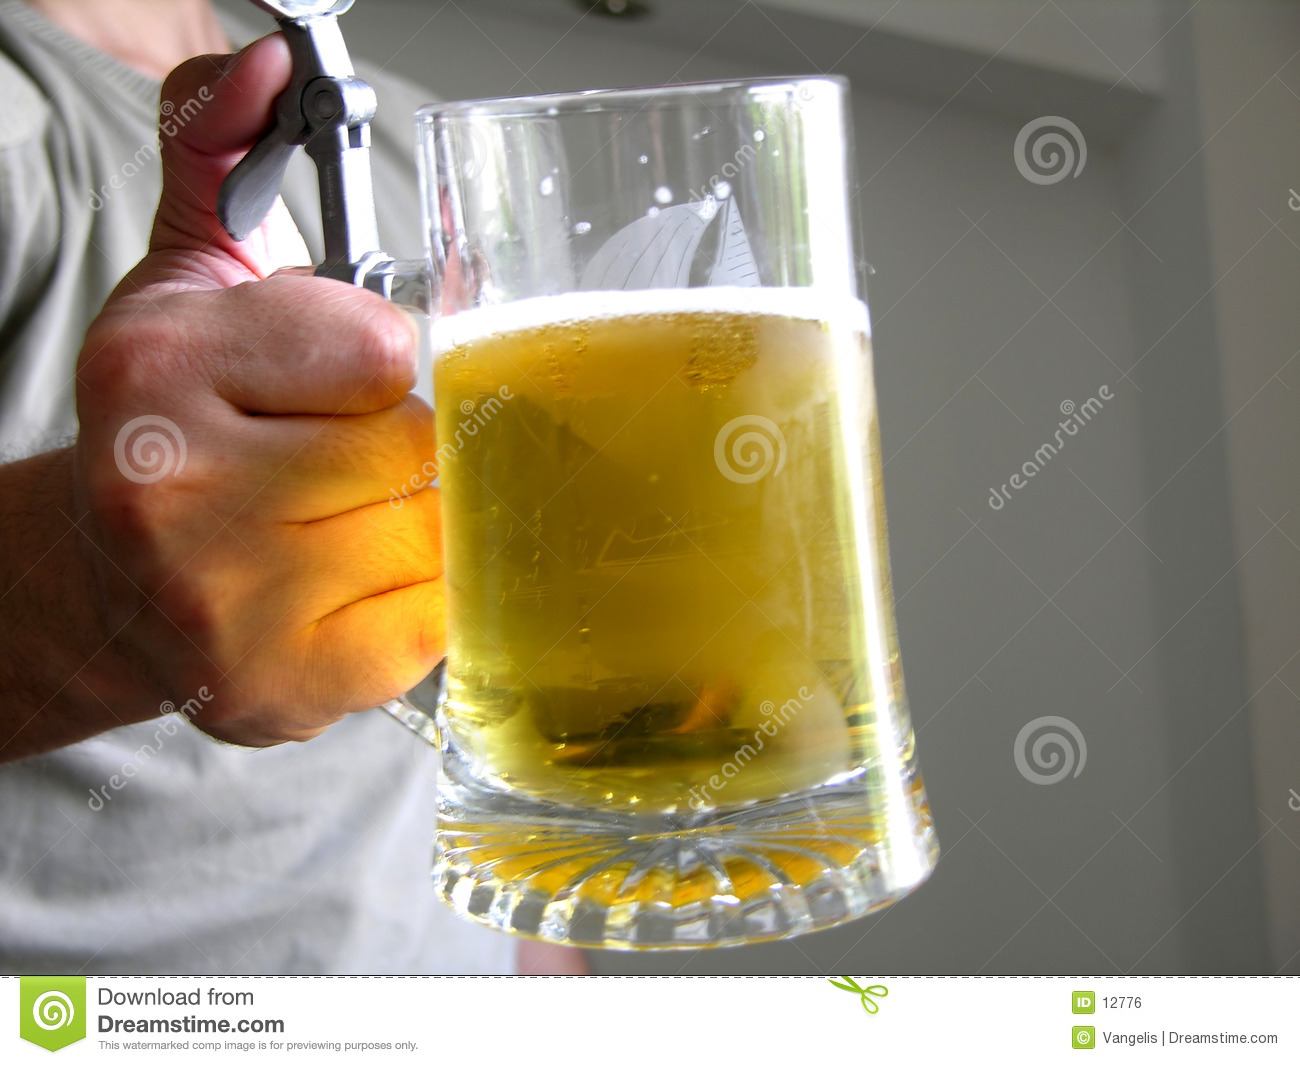 Want some beer?